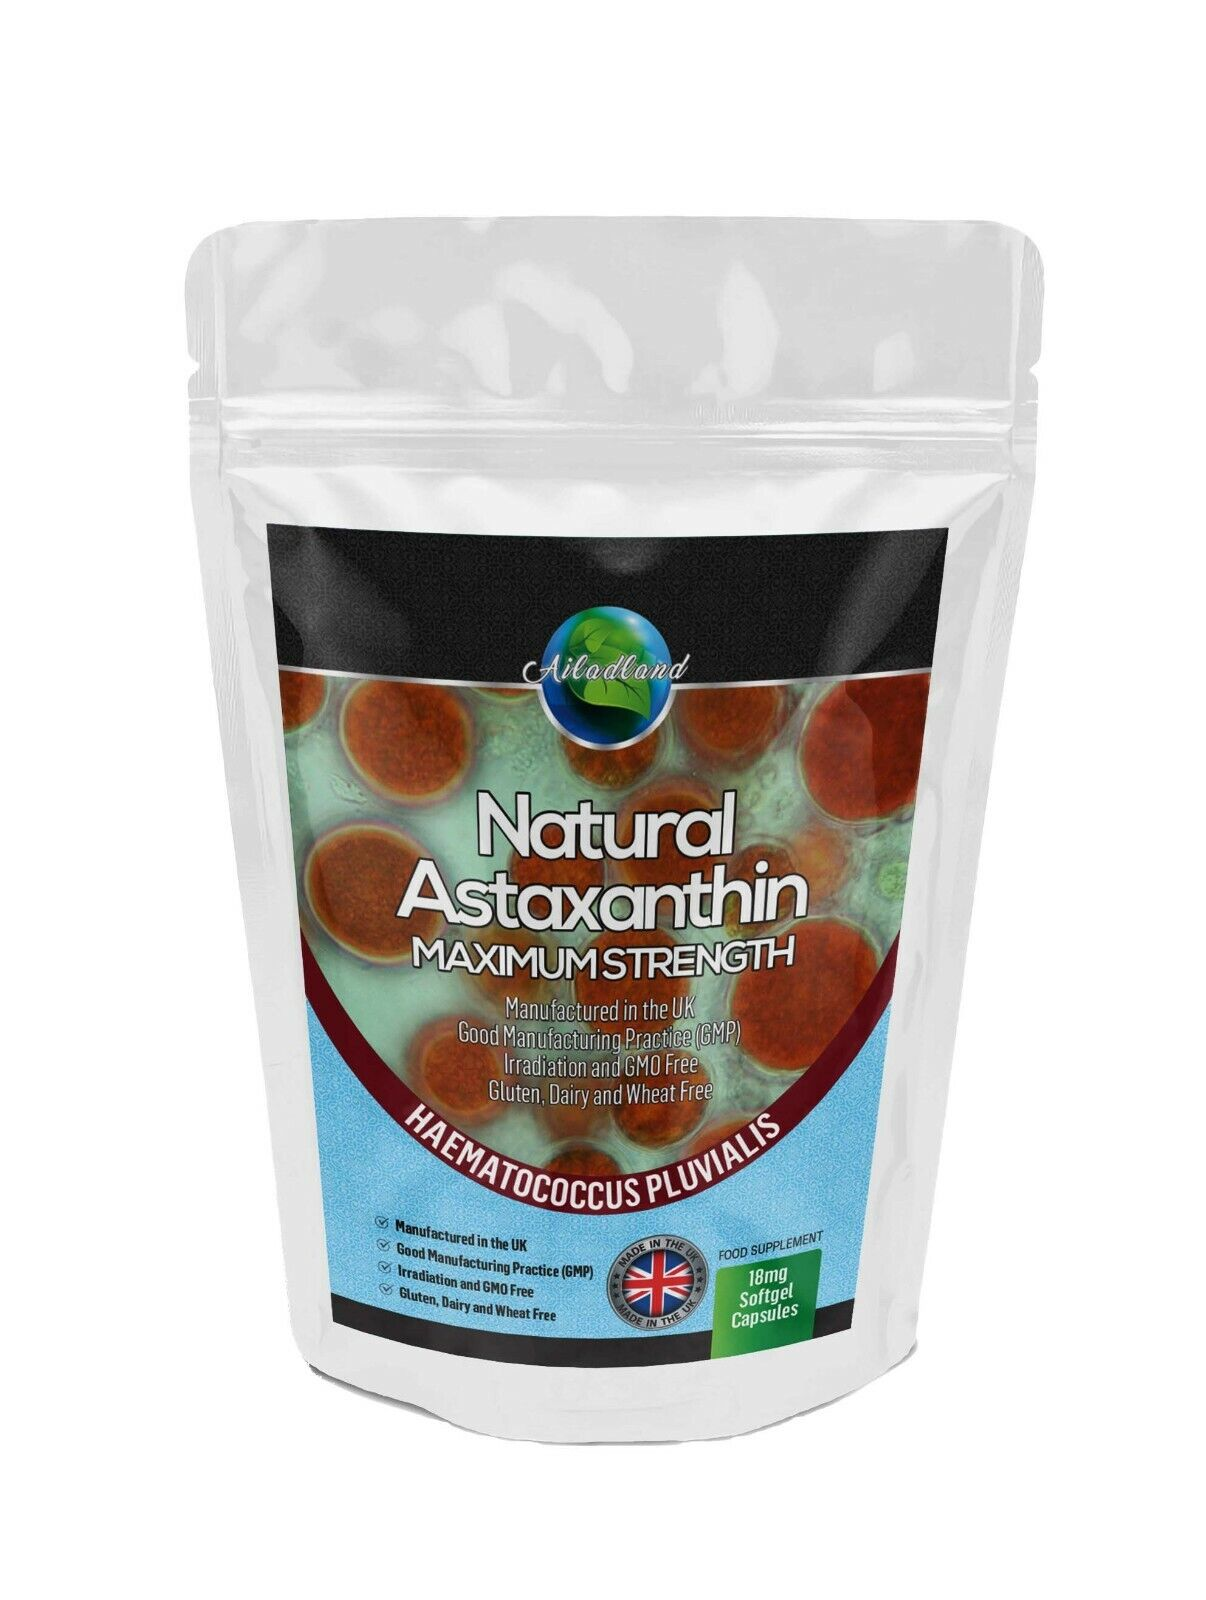 NATURAL ASTAXANTHIN 18mg HIGHEST STRENGTH 90 SOFTGELS, ANTIOXIDANT - MADE IN UK.